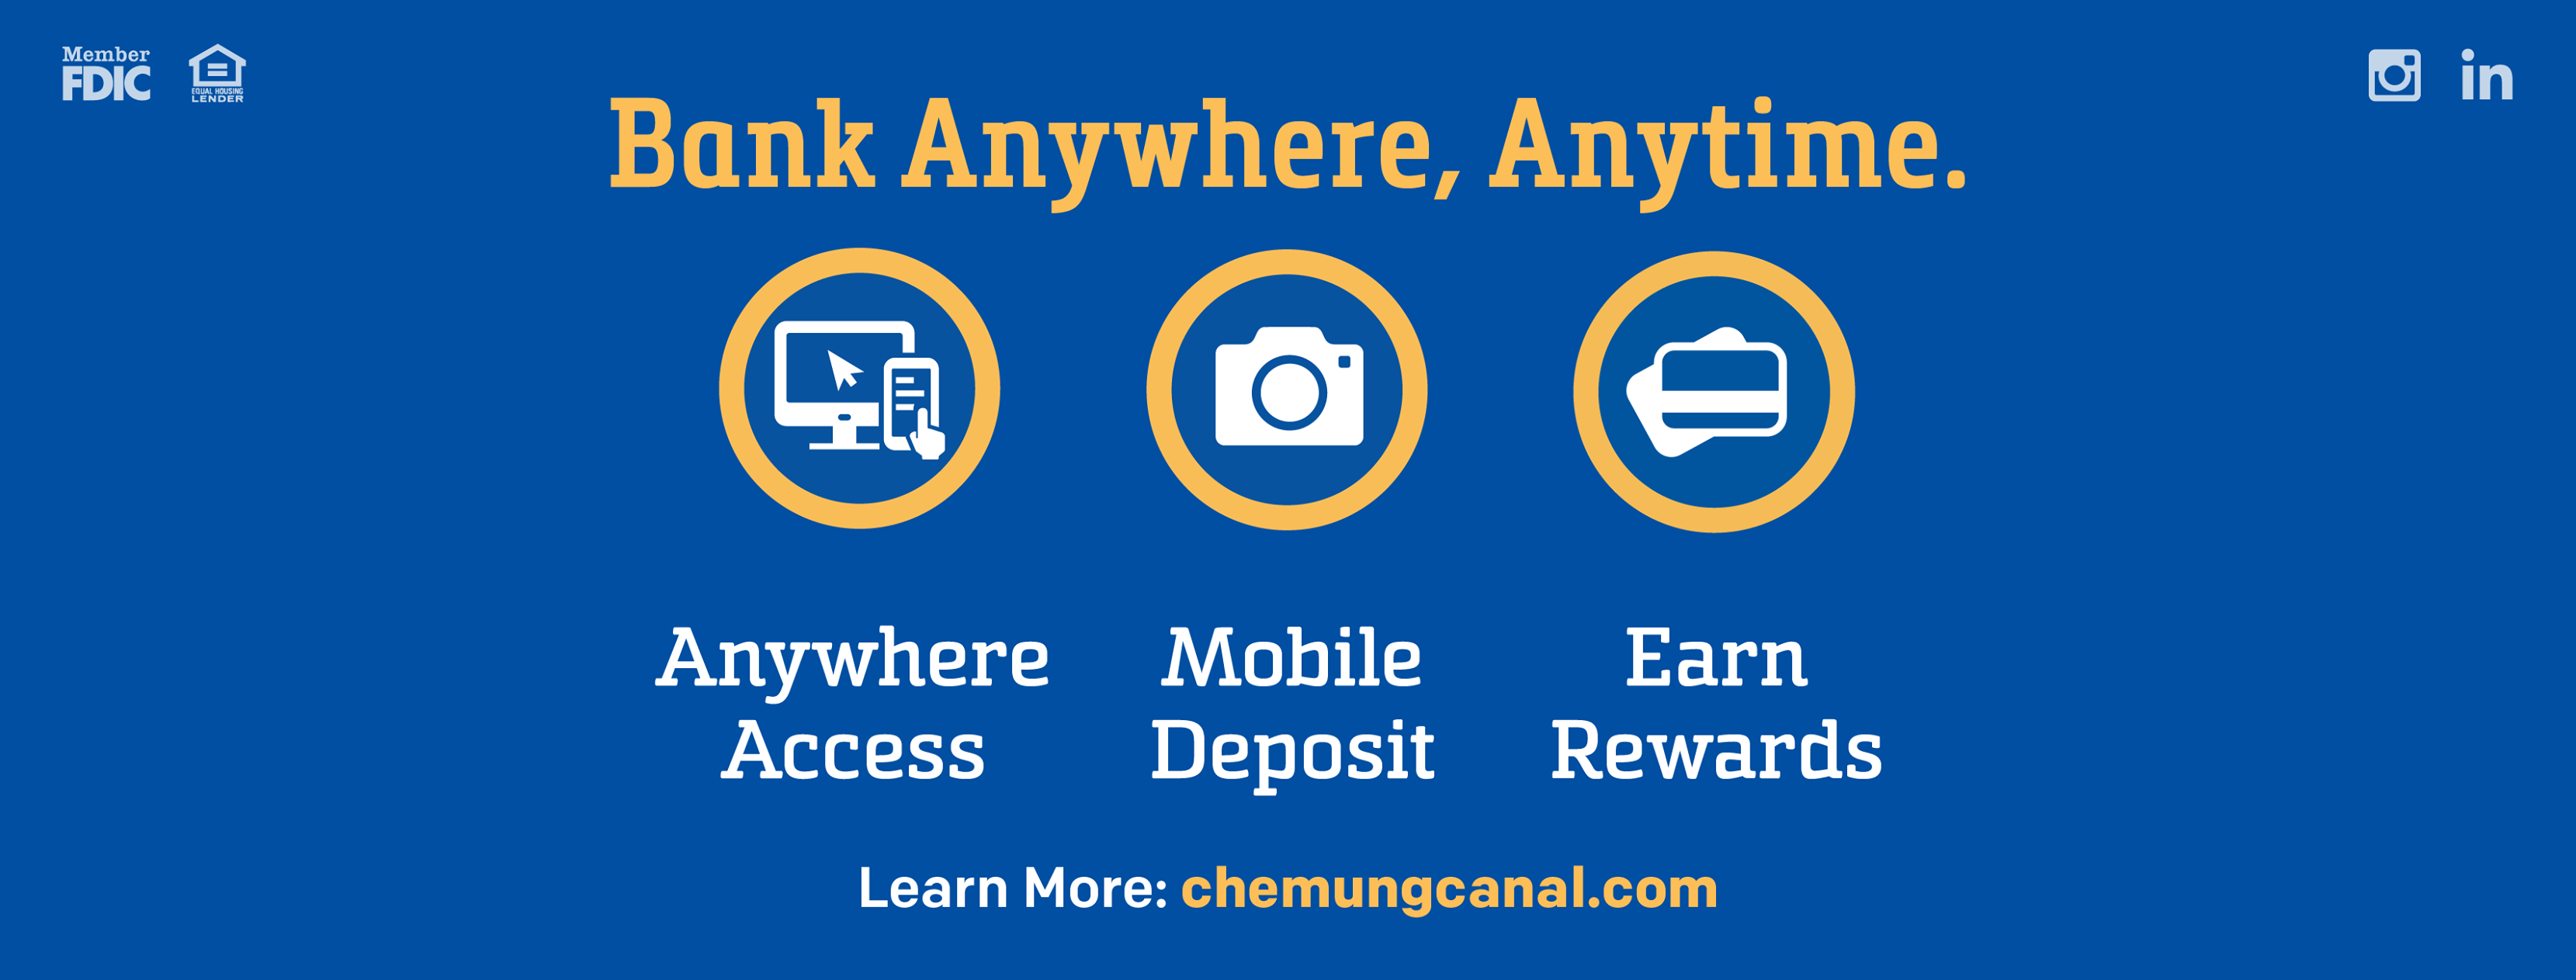 Chemung Financial Corporation Banner Image